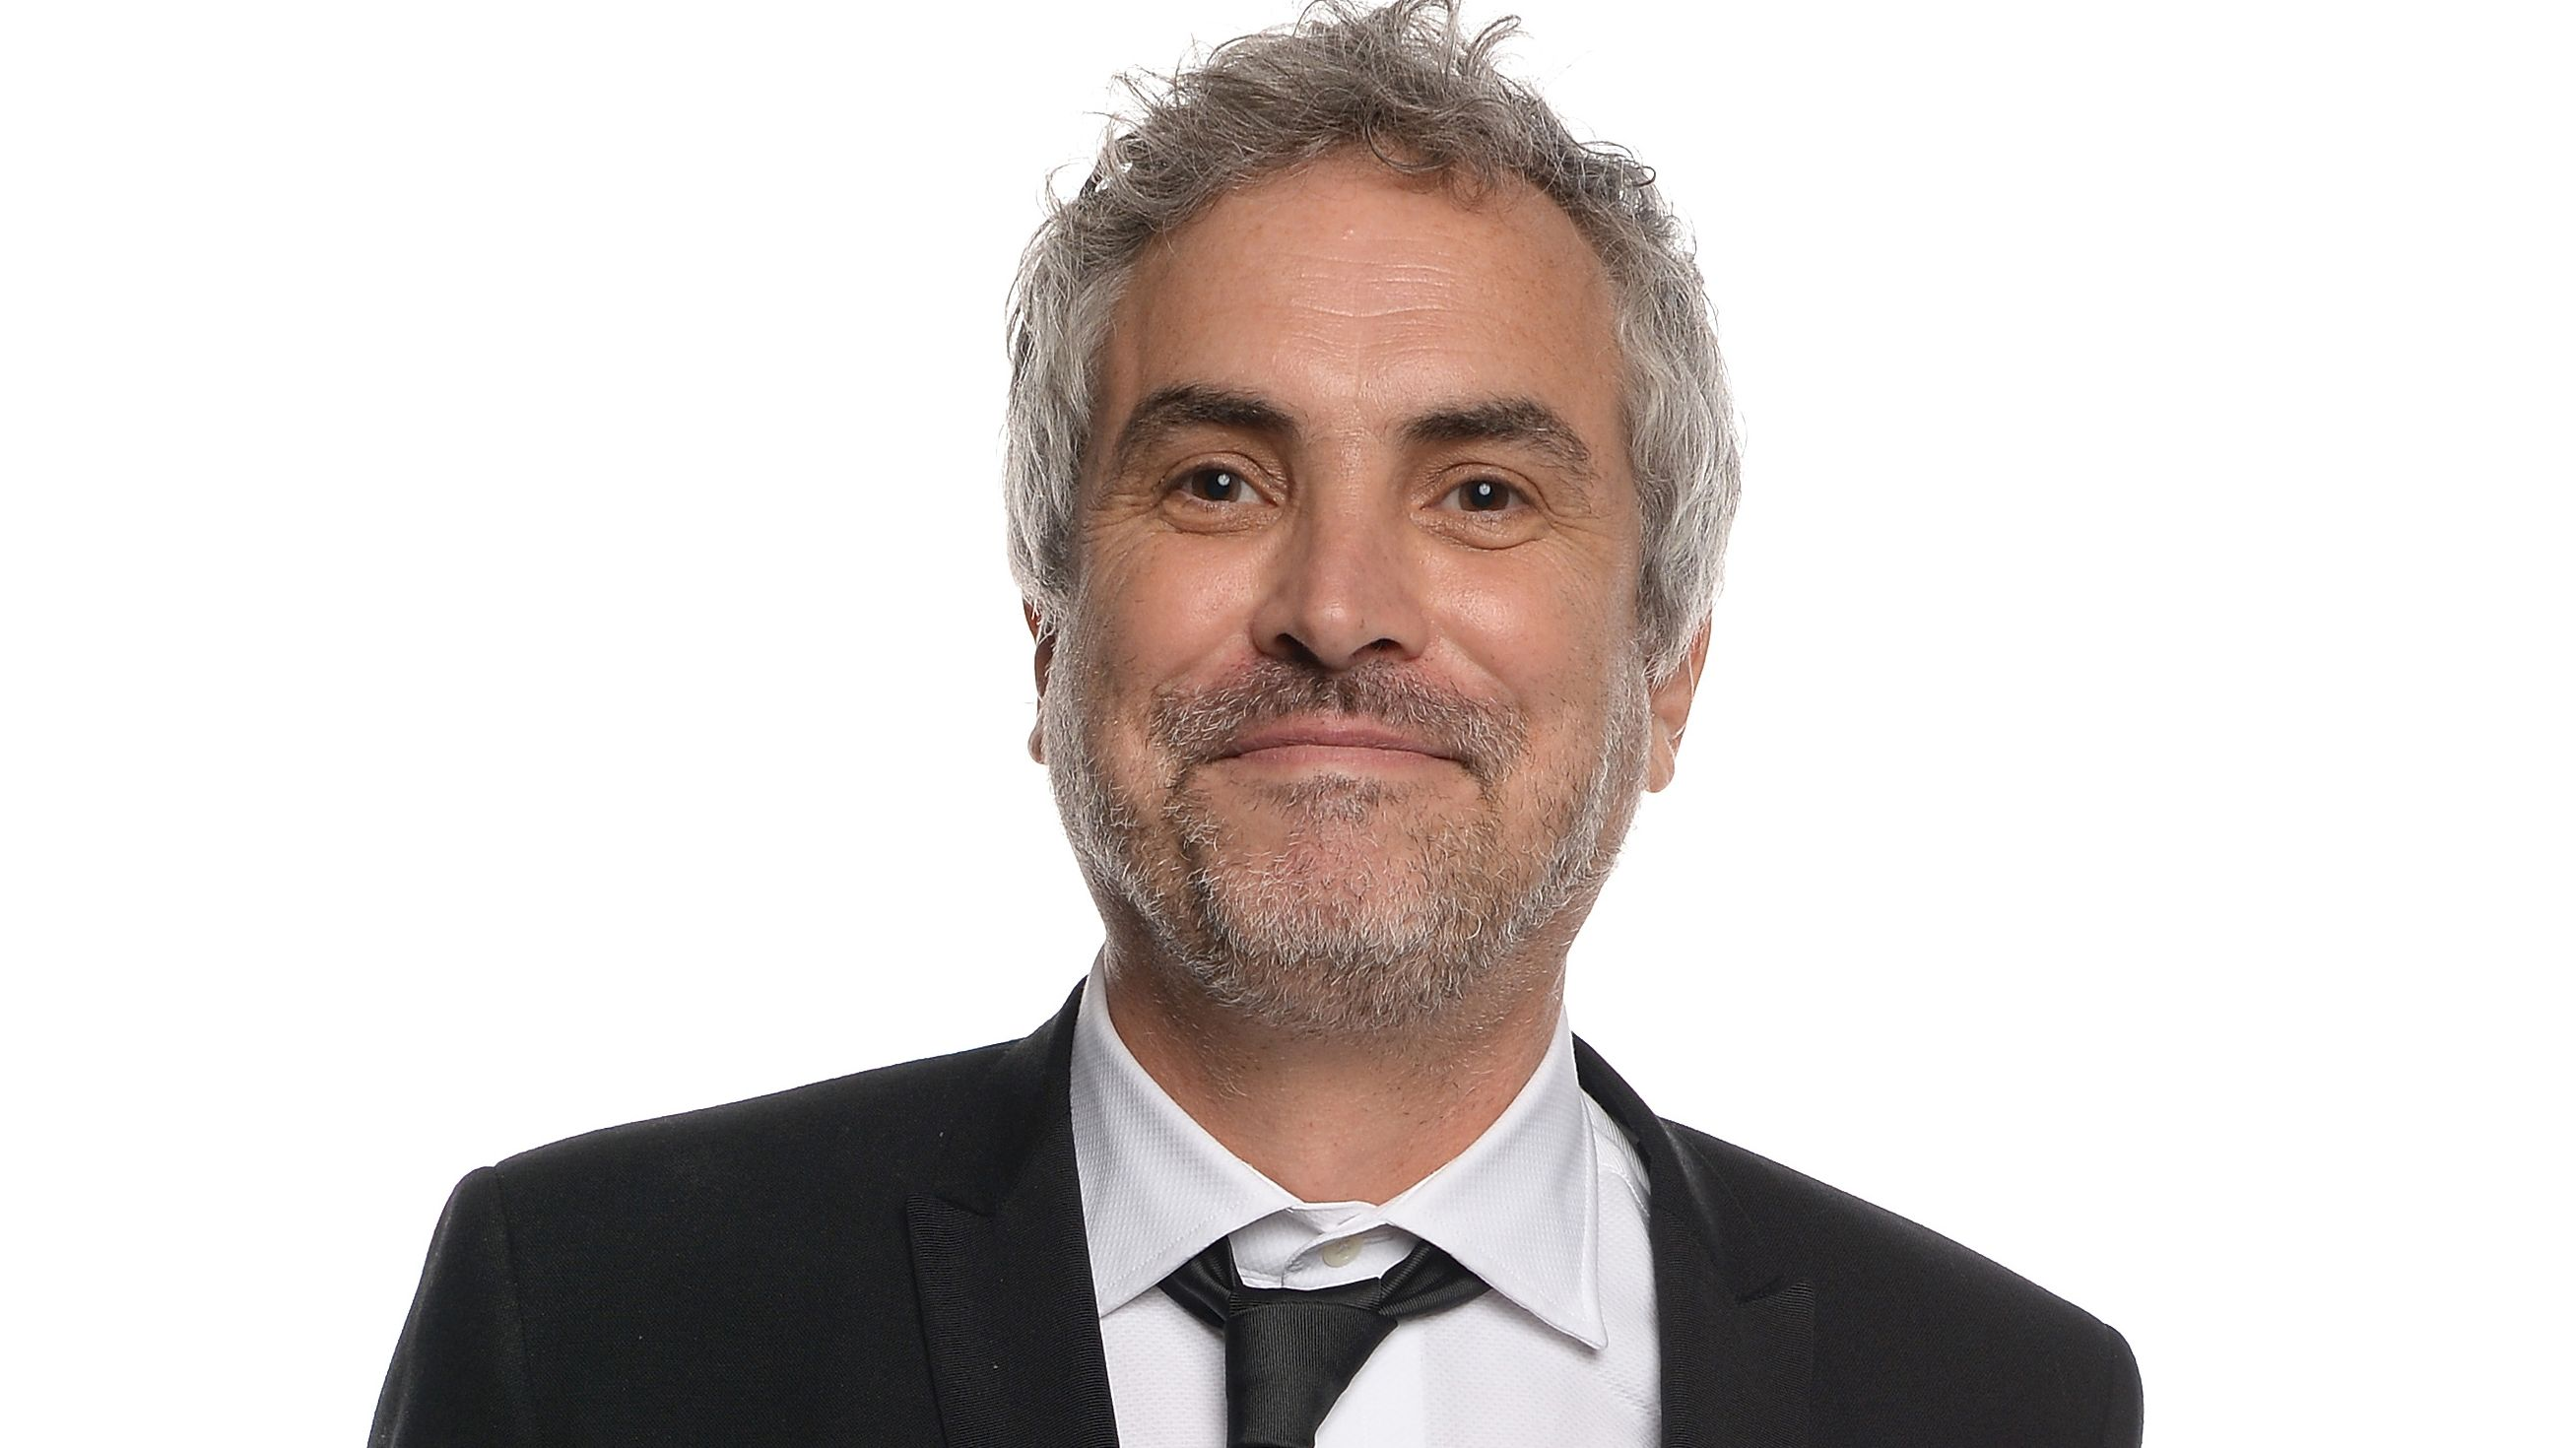 The 56-year old son of father (?) and mother(?), 185 cm tall Alfonso Cuarón in 2018 photo